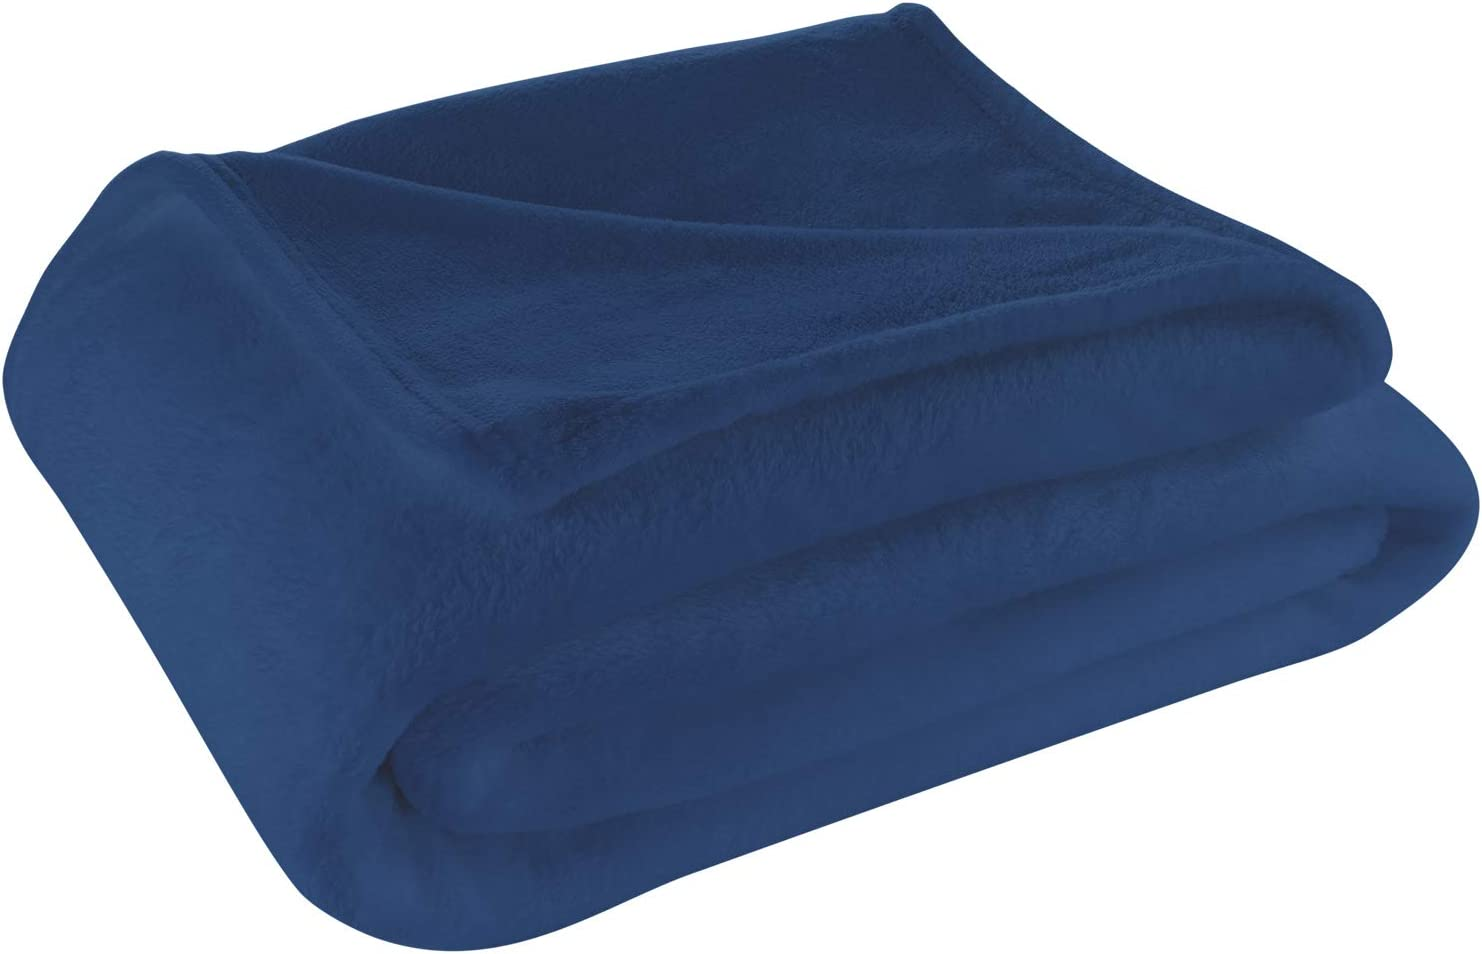 Cosy House Collection Twin/Twin XL Size Fleece Blanket – All Season, Lightweight & Plush Hypoallergenic - Microfiber Blankets for Bed, Couch or Travel - Navy